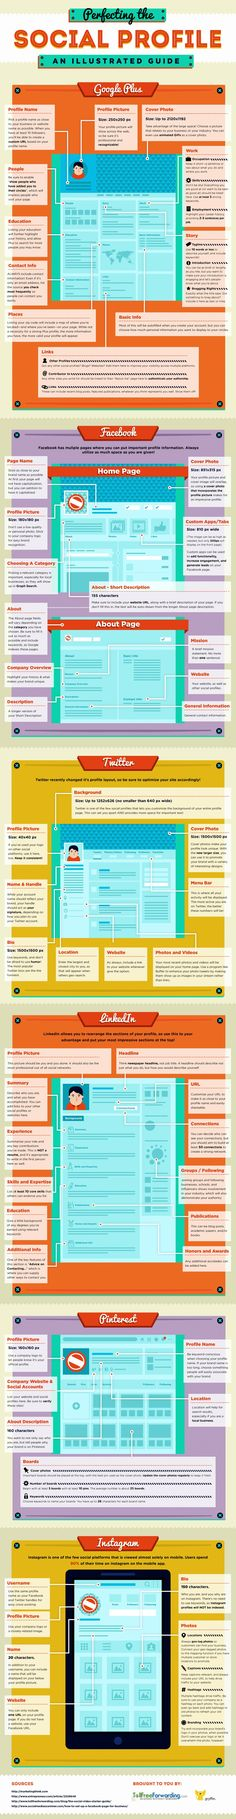 Facebook, Google+, Twitter, etc. - Perfecting Your Social Media Profiles - #infographic